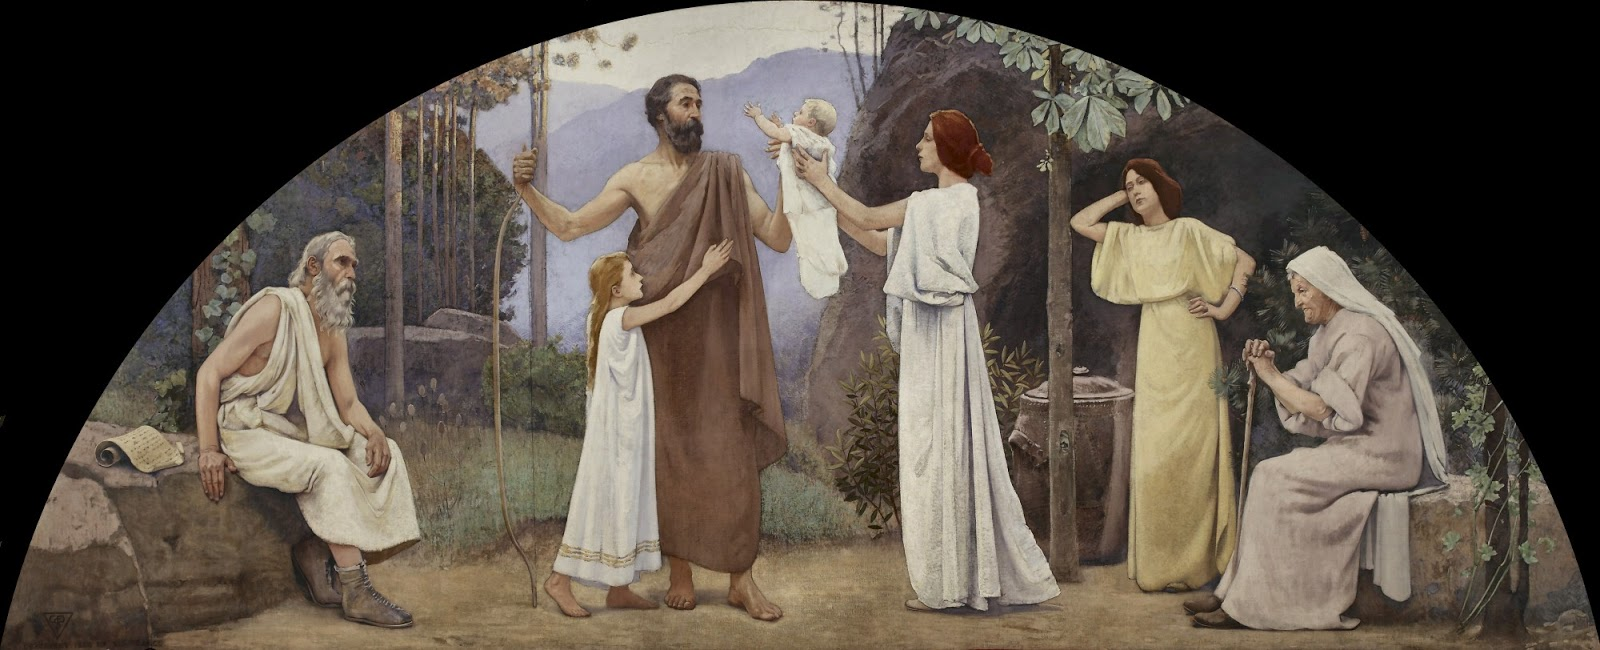 Charles  Sprague  Pearce  mural  library  of  congress  washington  family